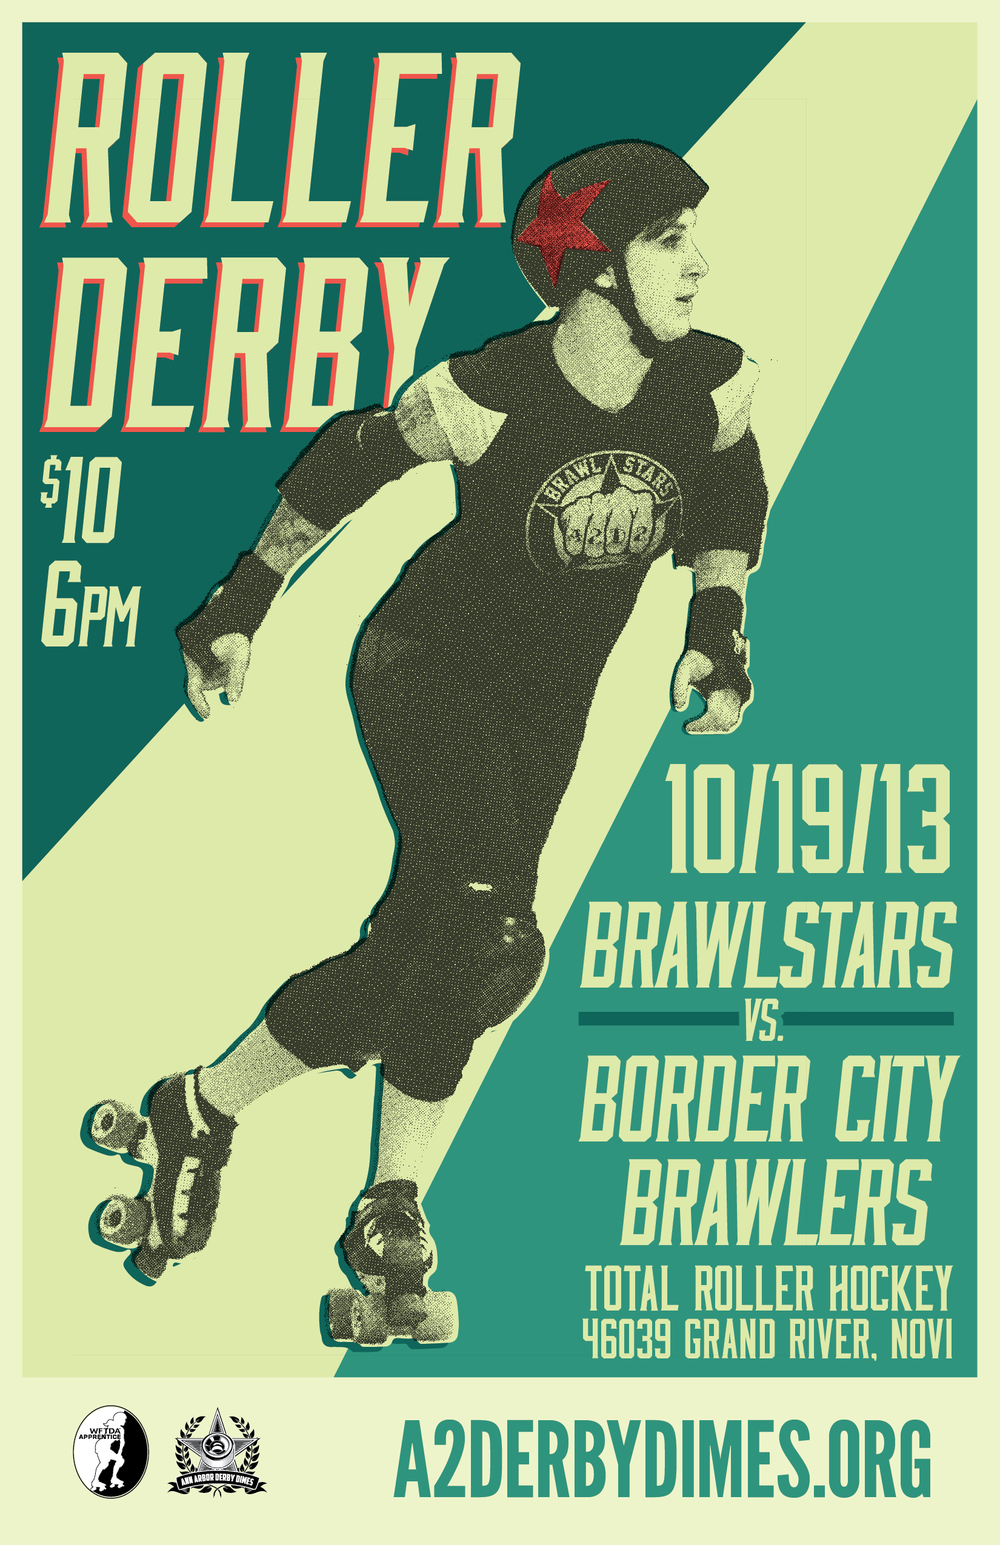 10.19.13 Bout-01.png